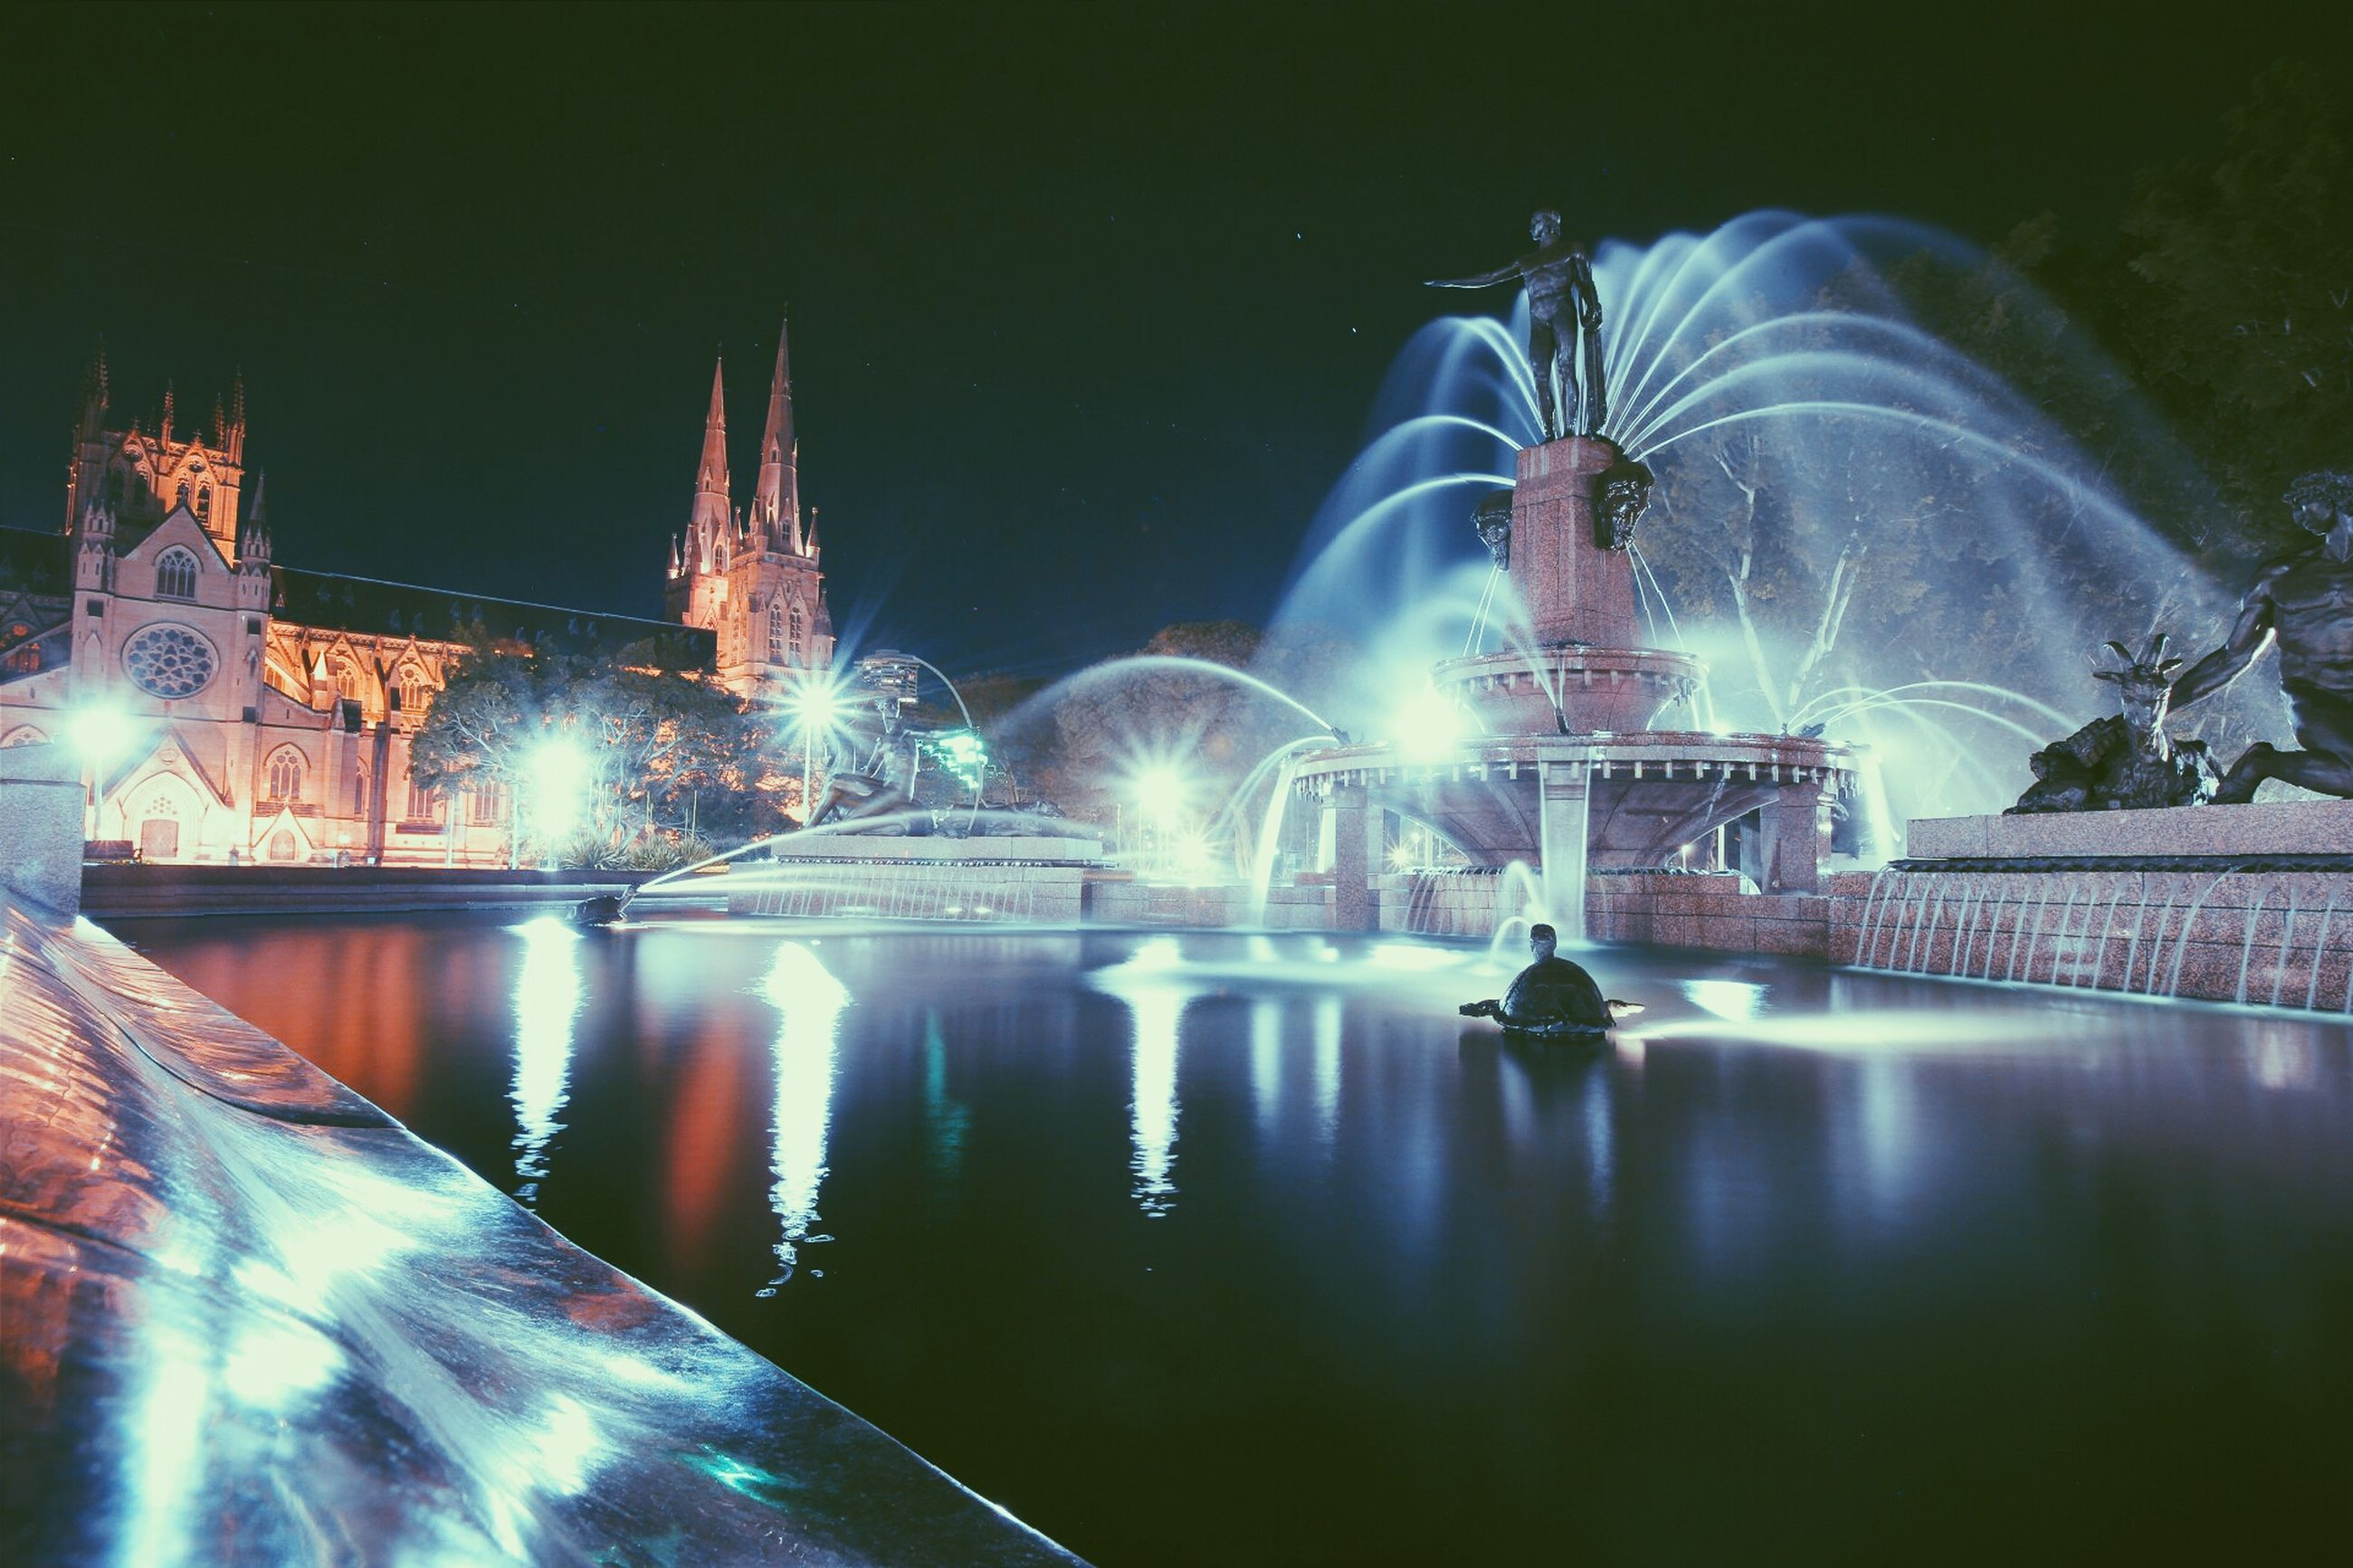 architecture, water, built structure, famous place, international landmark, reflection, travel destinations, building exterior, capital cities, tourism, night, fountain, city, illuminated, travel, river, waterfront, modern, spraying, clear sky